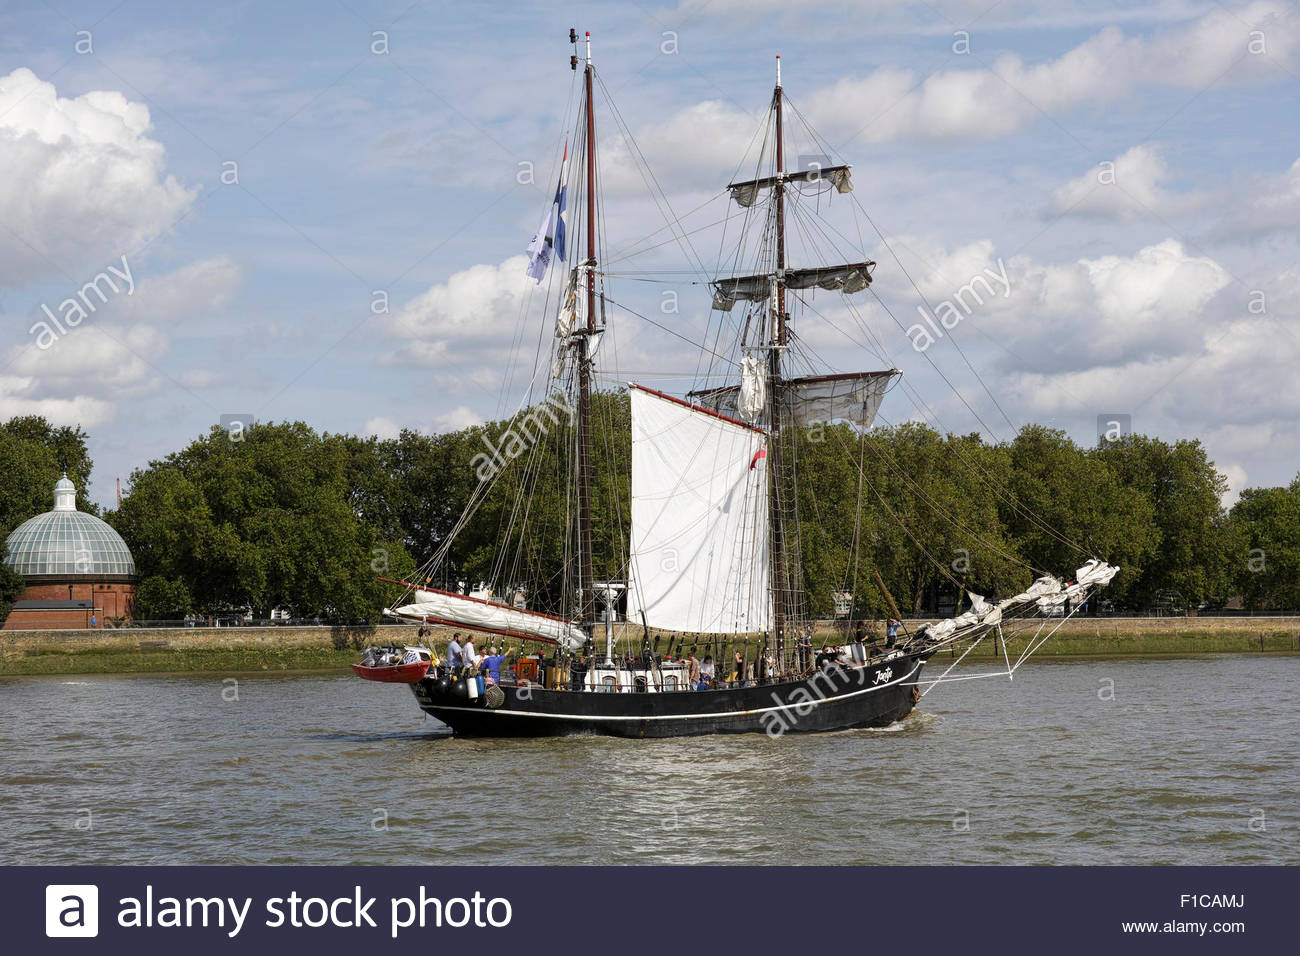 Historic schooner 'Jantje' passes Island Gardens on the Isle of Dogs during the Tall Ships Festival 2015 - Stock Image